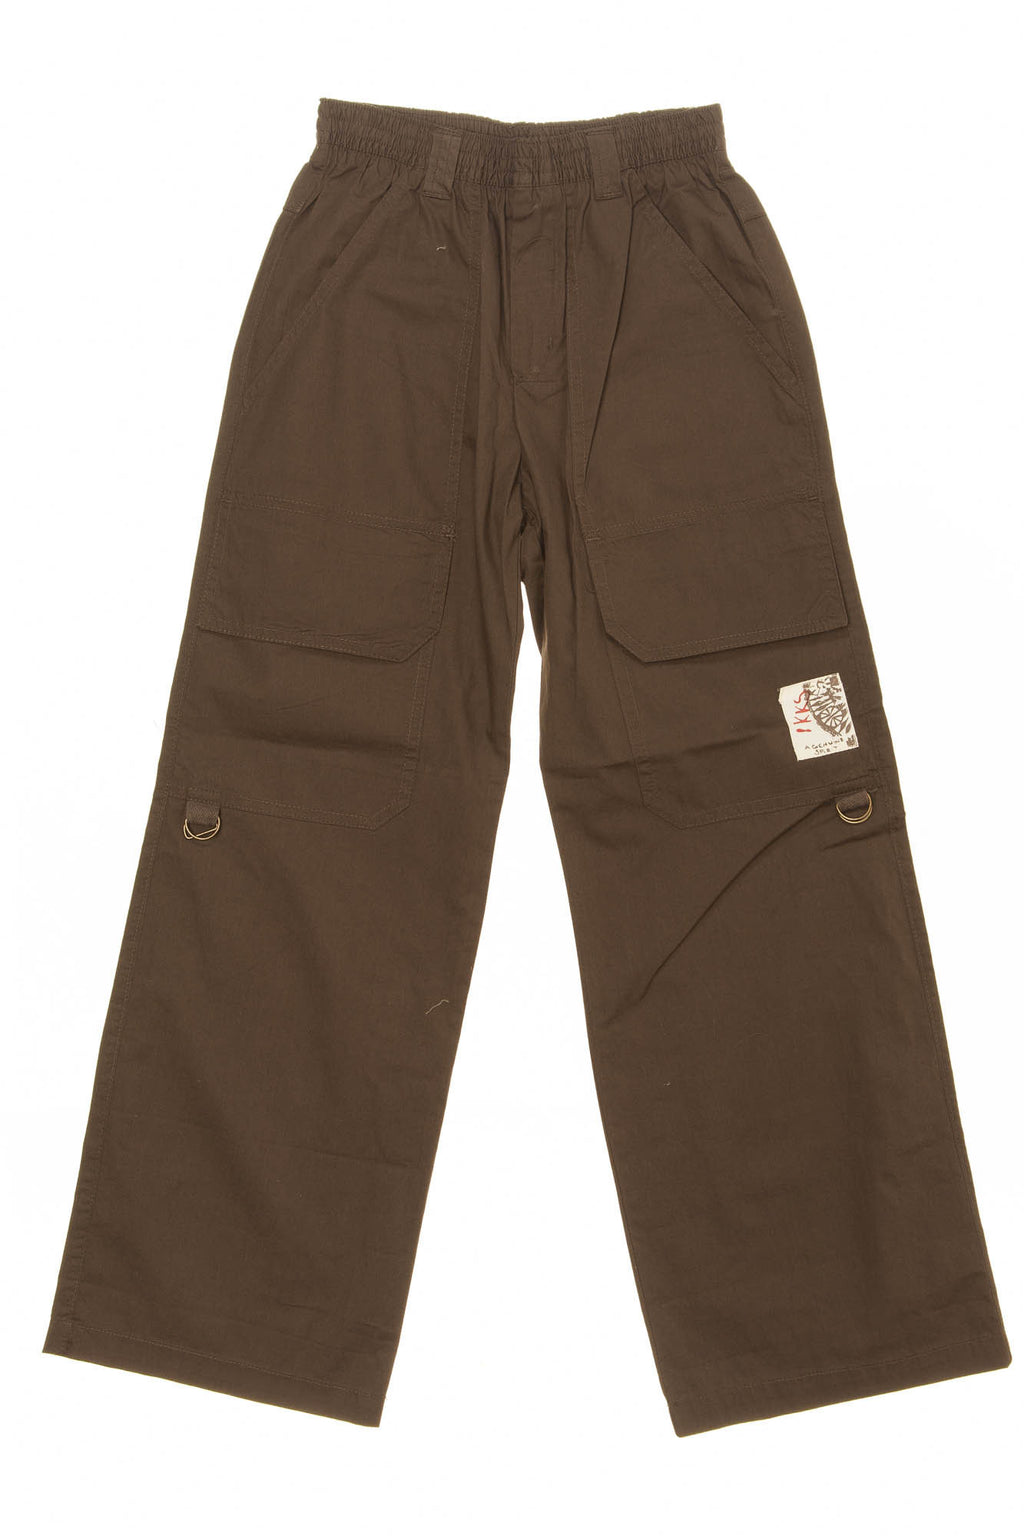 IKKS - Brown Pants